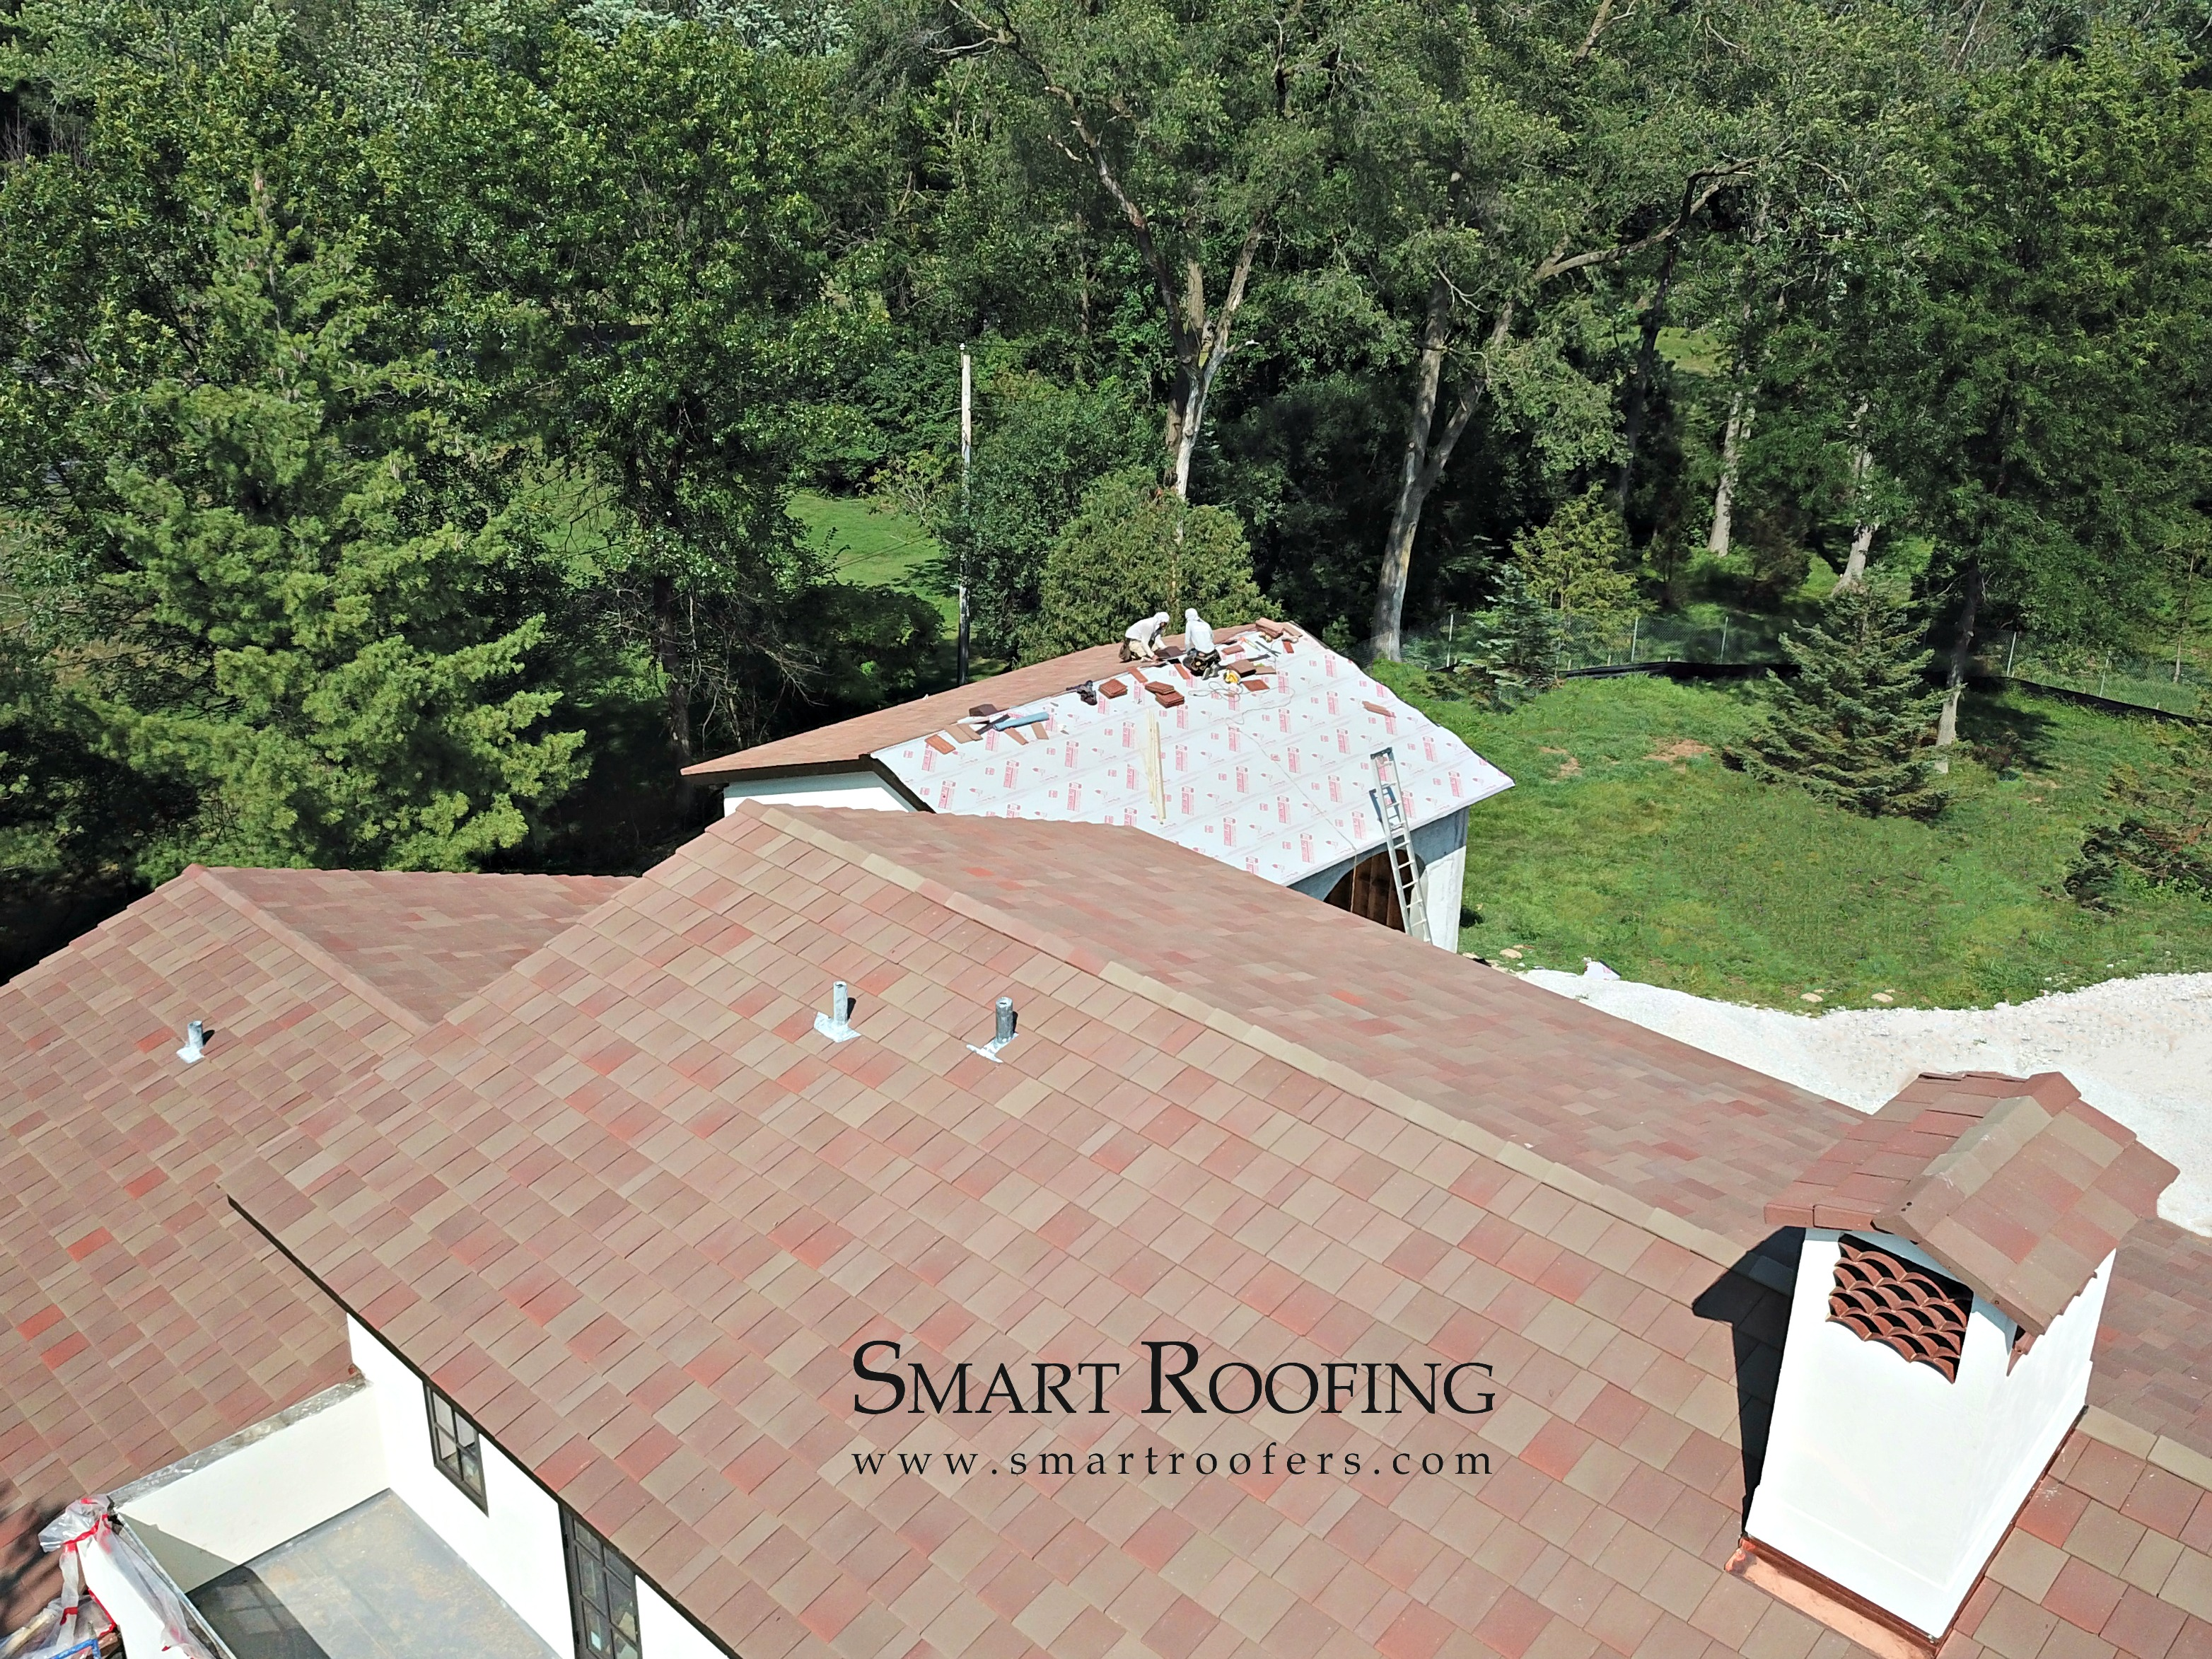 Ludowici Clay Tile Roof In Burr Ridge Smart Roofing